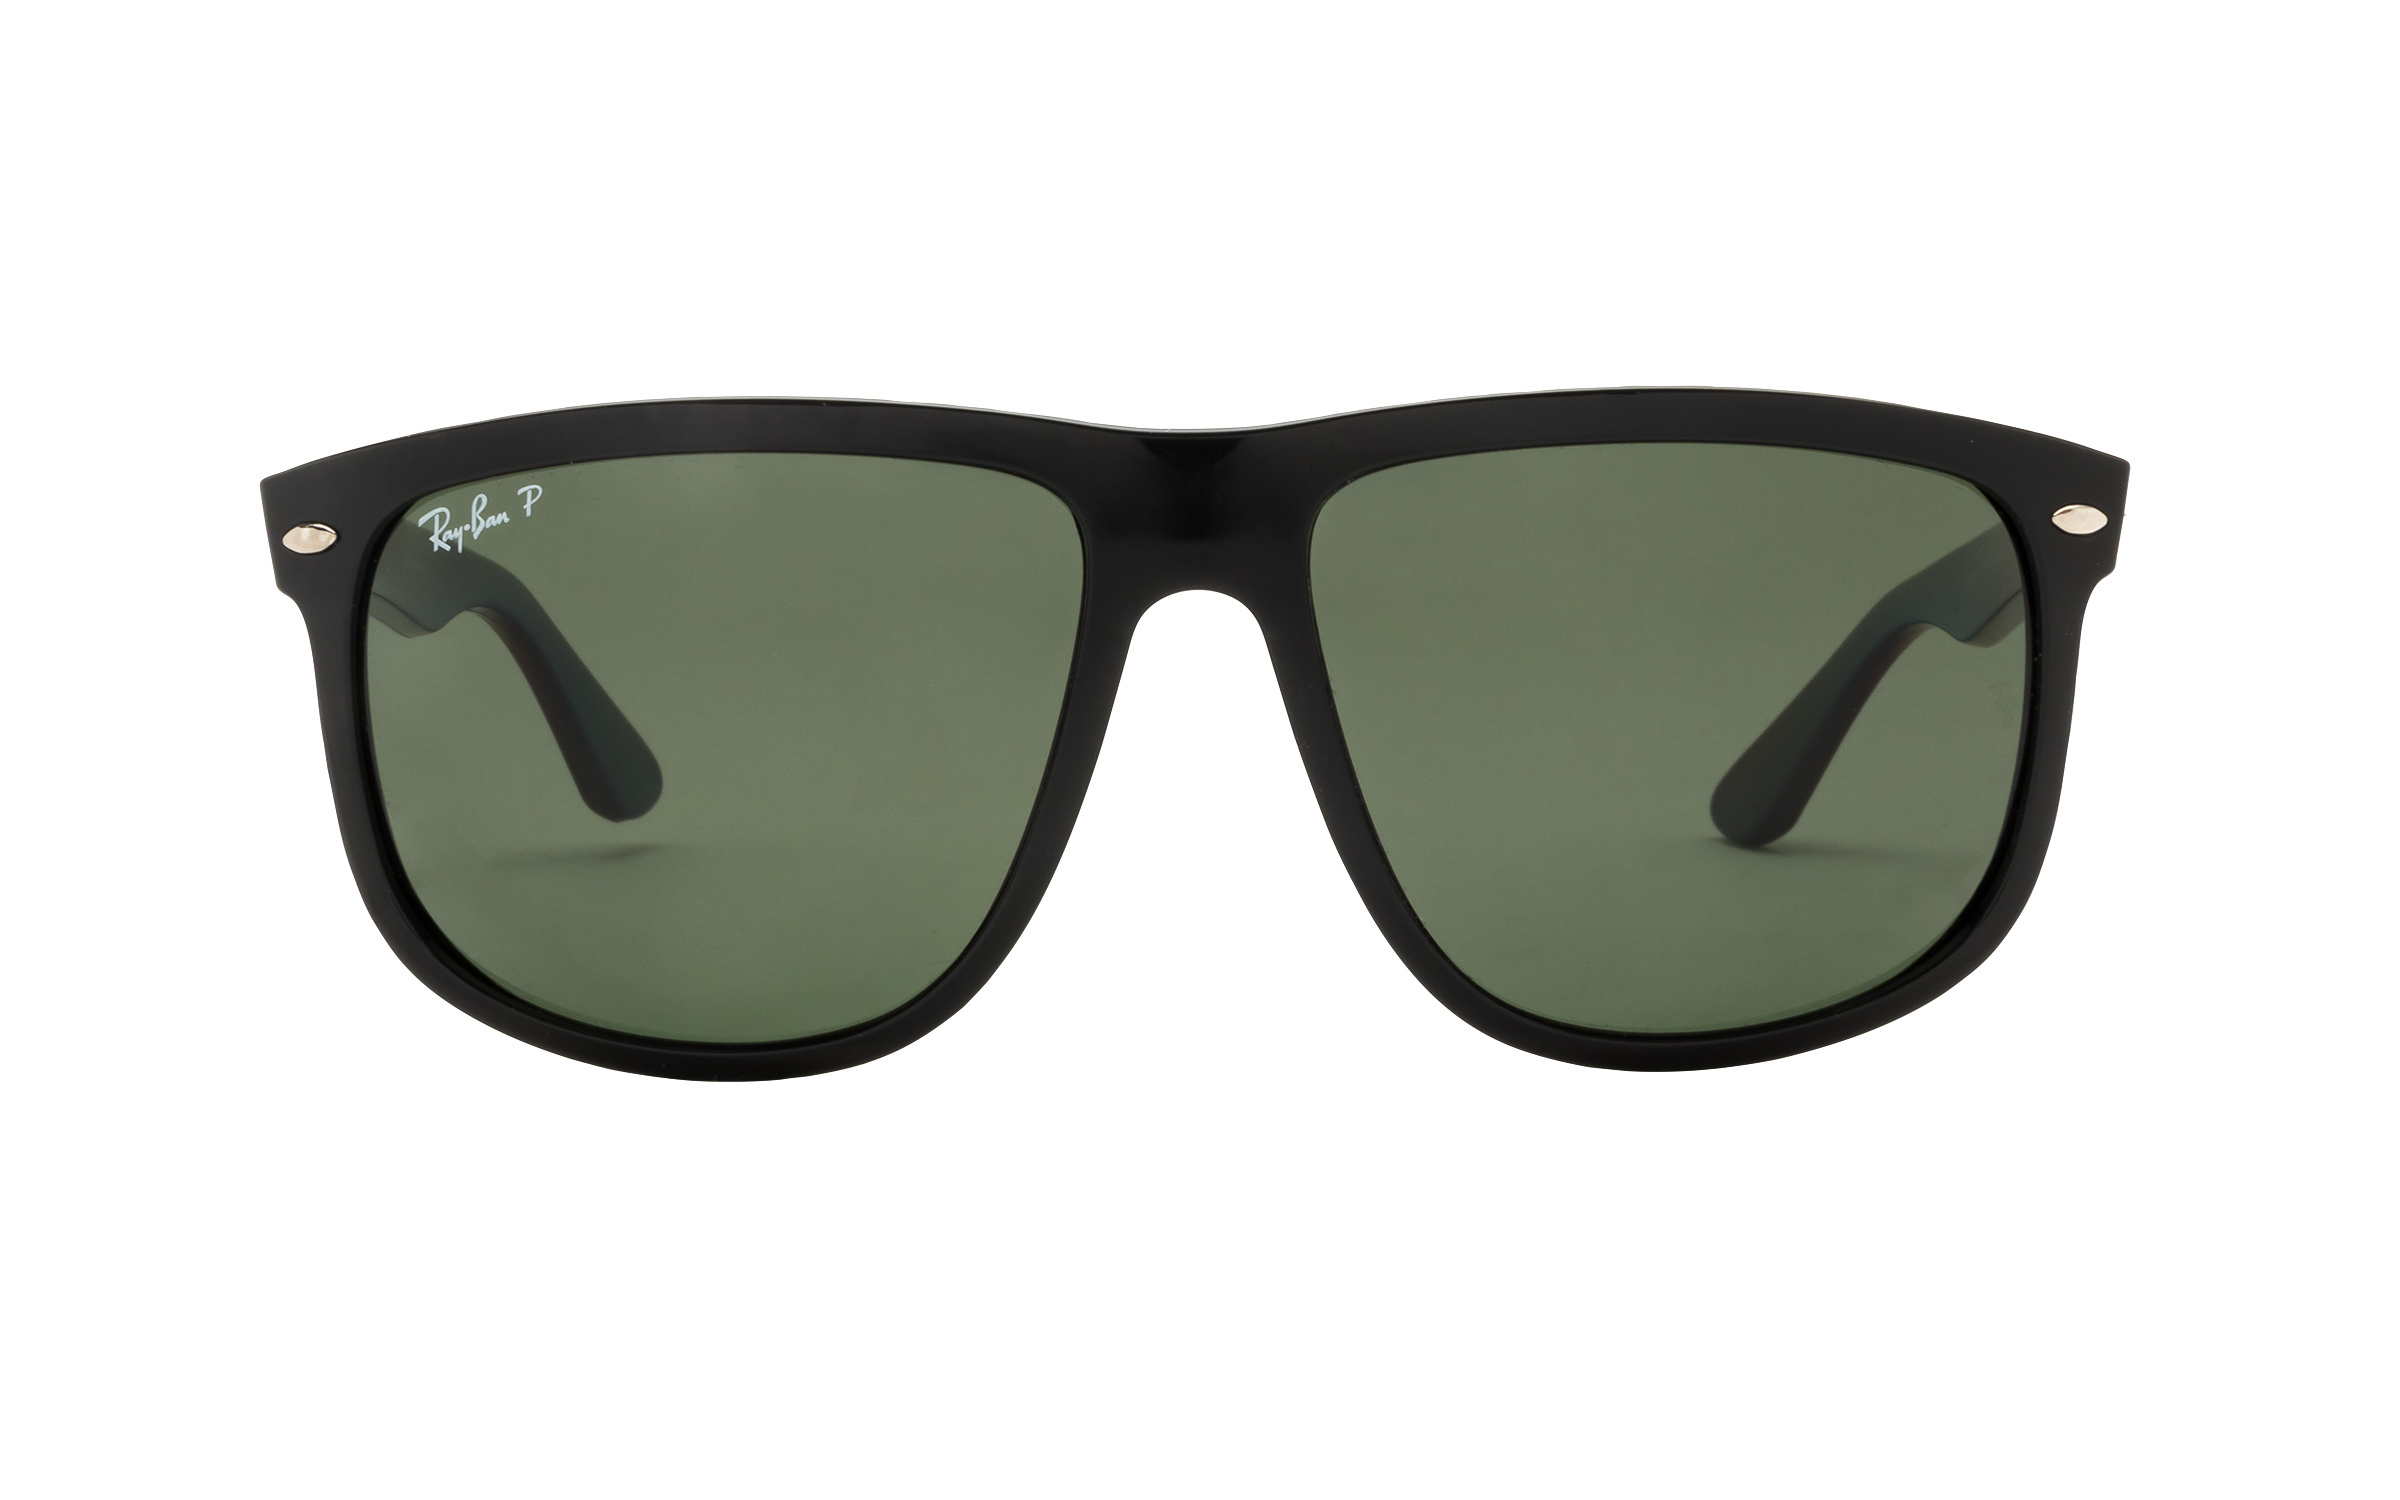 Ray-Ban RB4147 601 58 60 Sunglasses in Polarized Black - Online Coastal